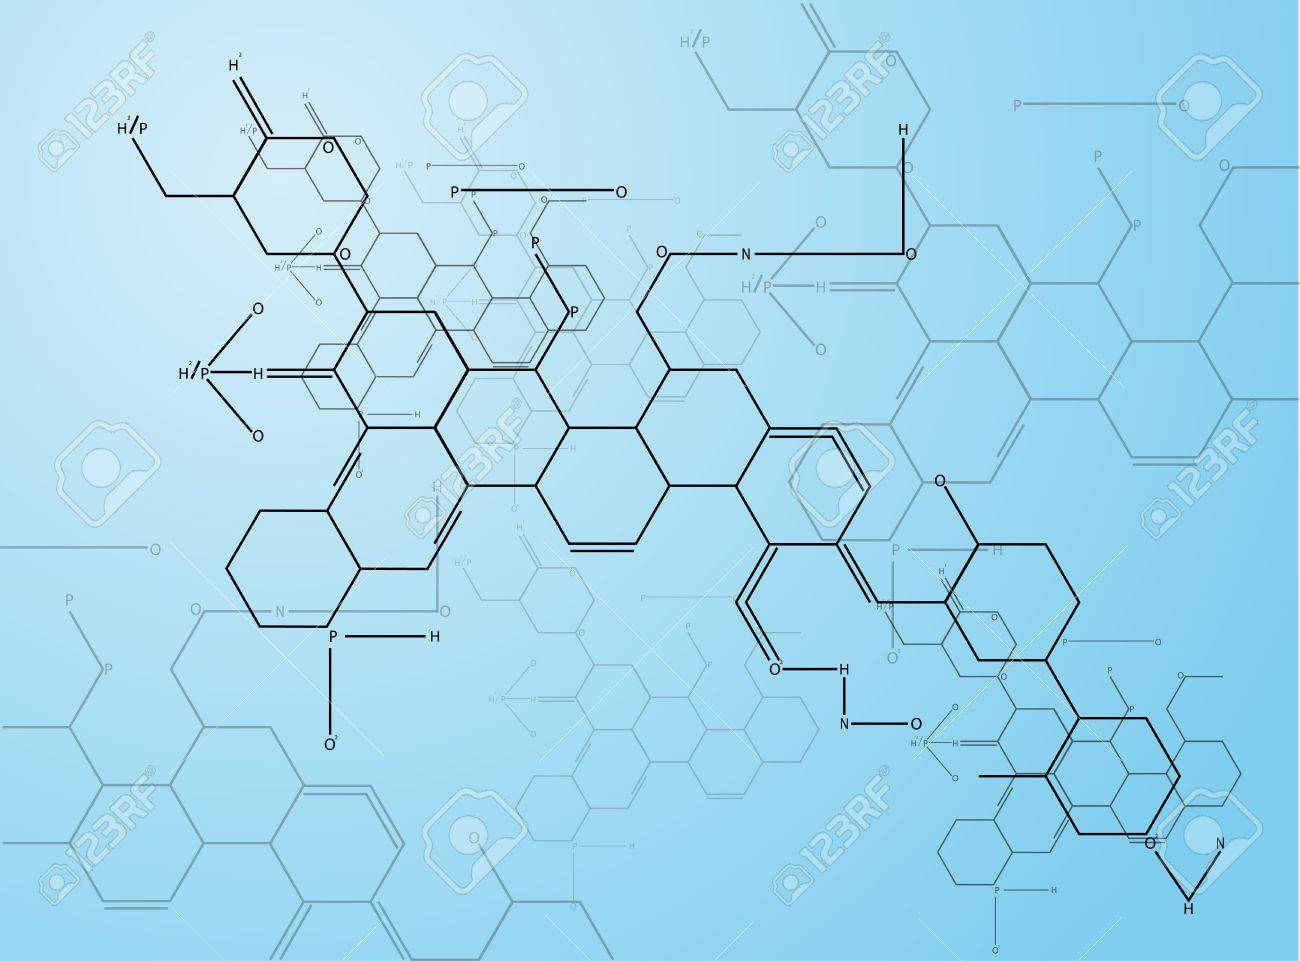 Abstract images of molecular structures in 3D  Eps 10 Stock Vector - 21809279